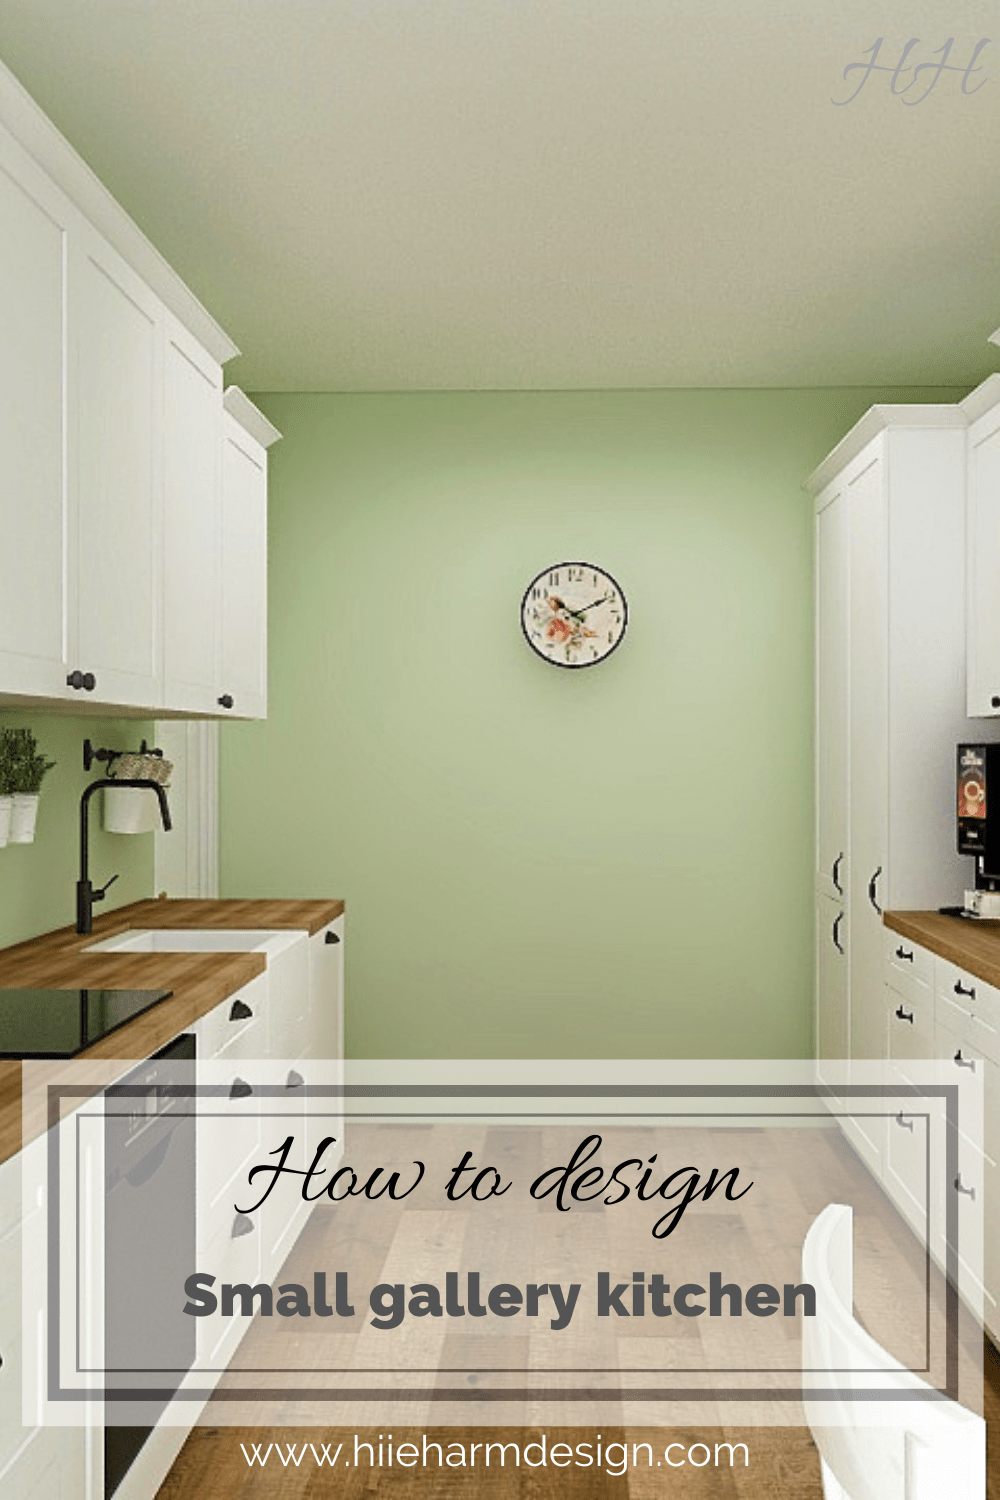 How to design small gallery kitchen 2-min